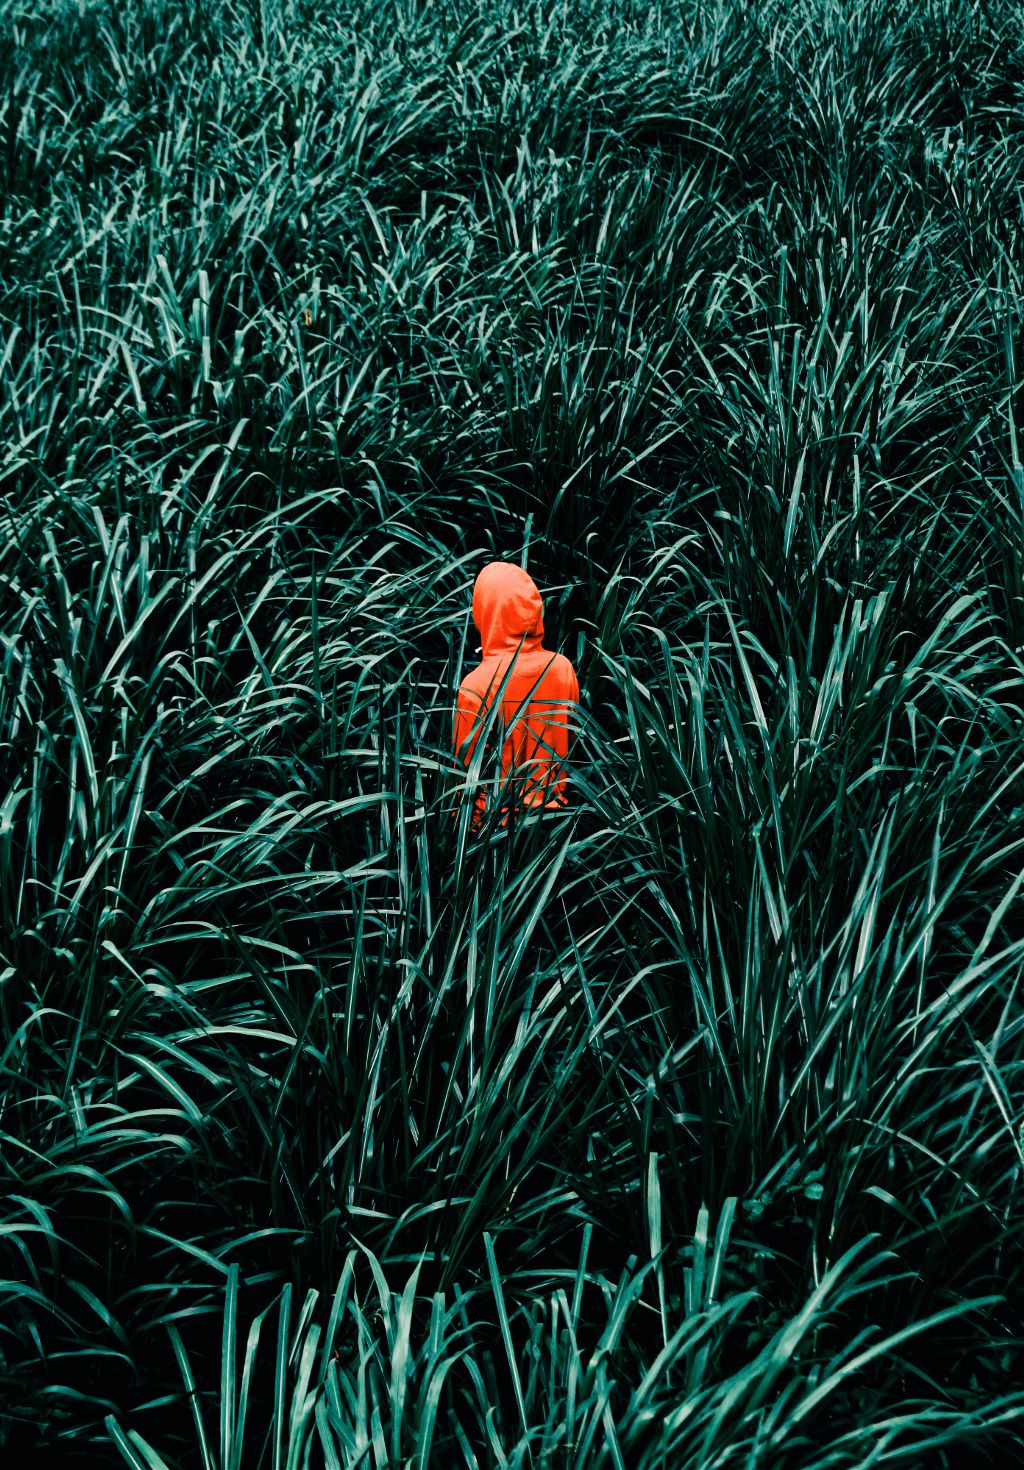 #freetoedit #grass #green #people #red